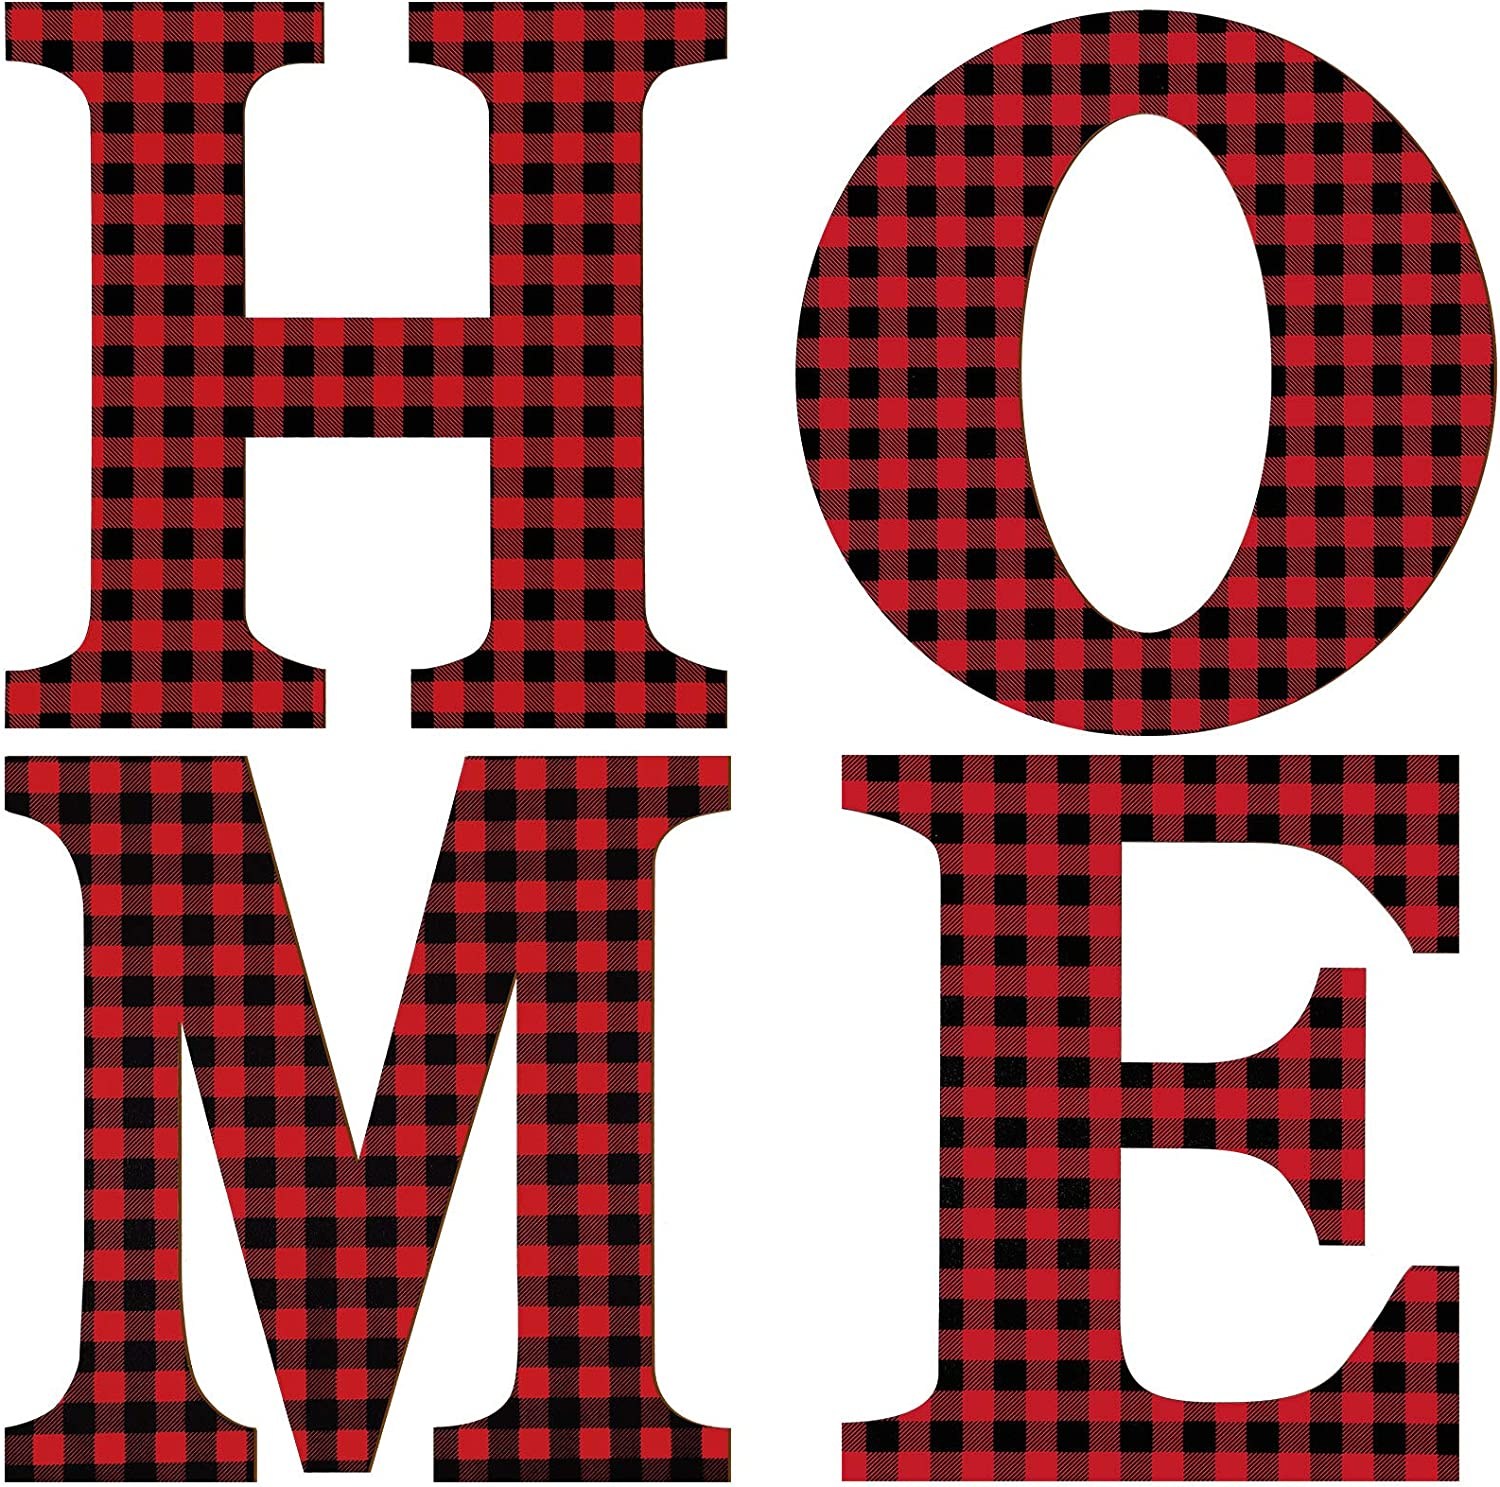 4 Pieces Christmas Home Letter Sign Buffalo Check Plaid Letter 12 Inch Wooden Large Home Sign Rustic Wooden Holiday Ornaments for Front Door Christmas Holiday Indoor Home Decor